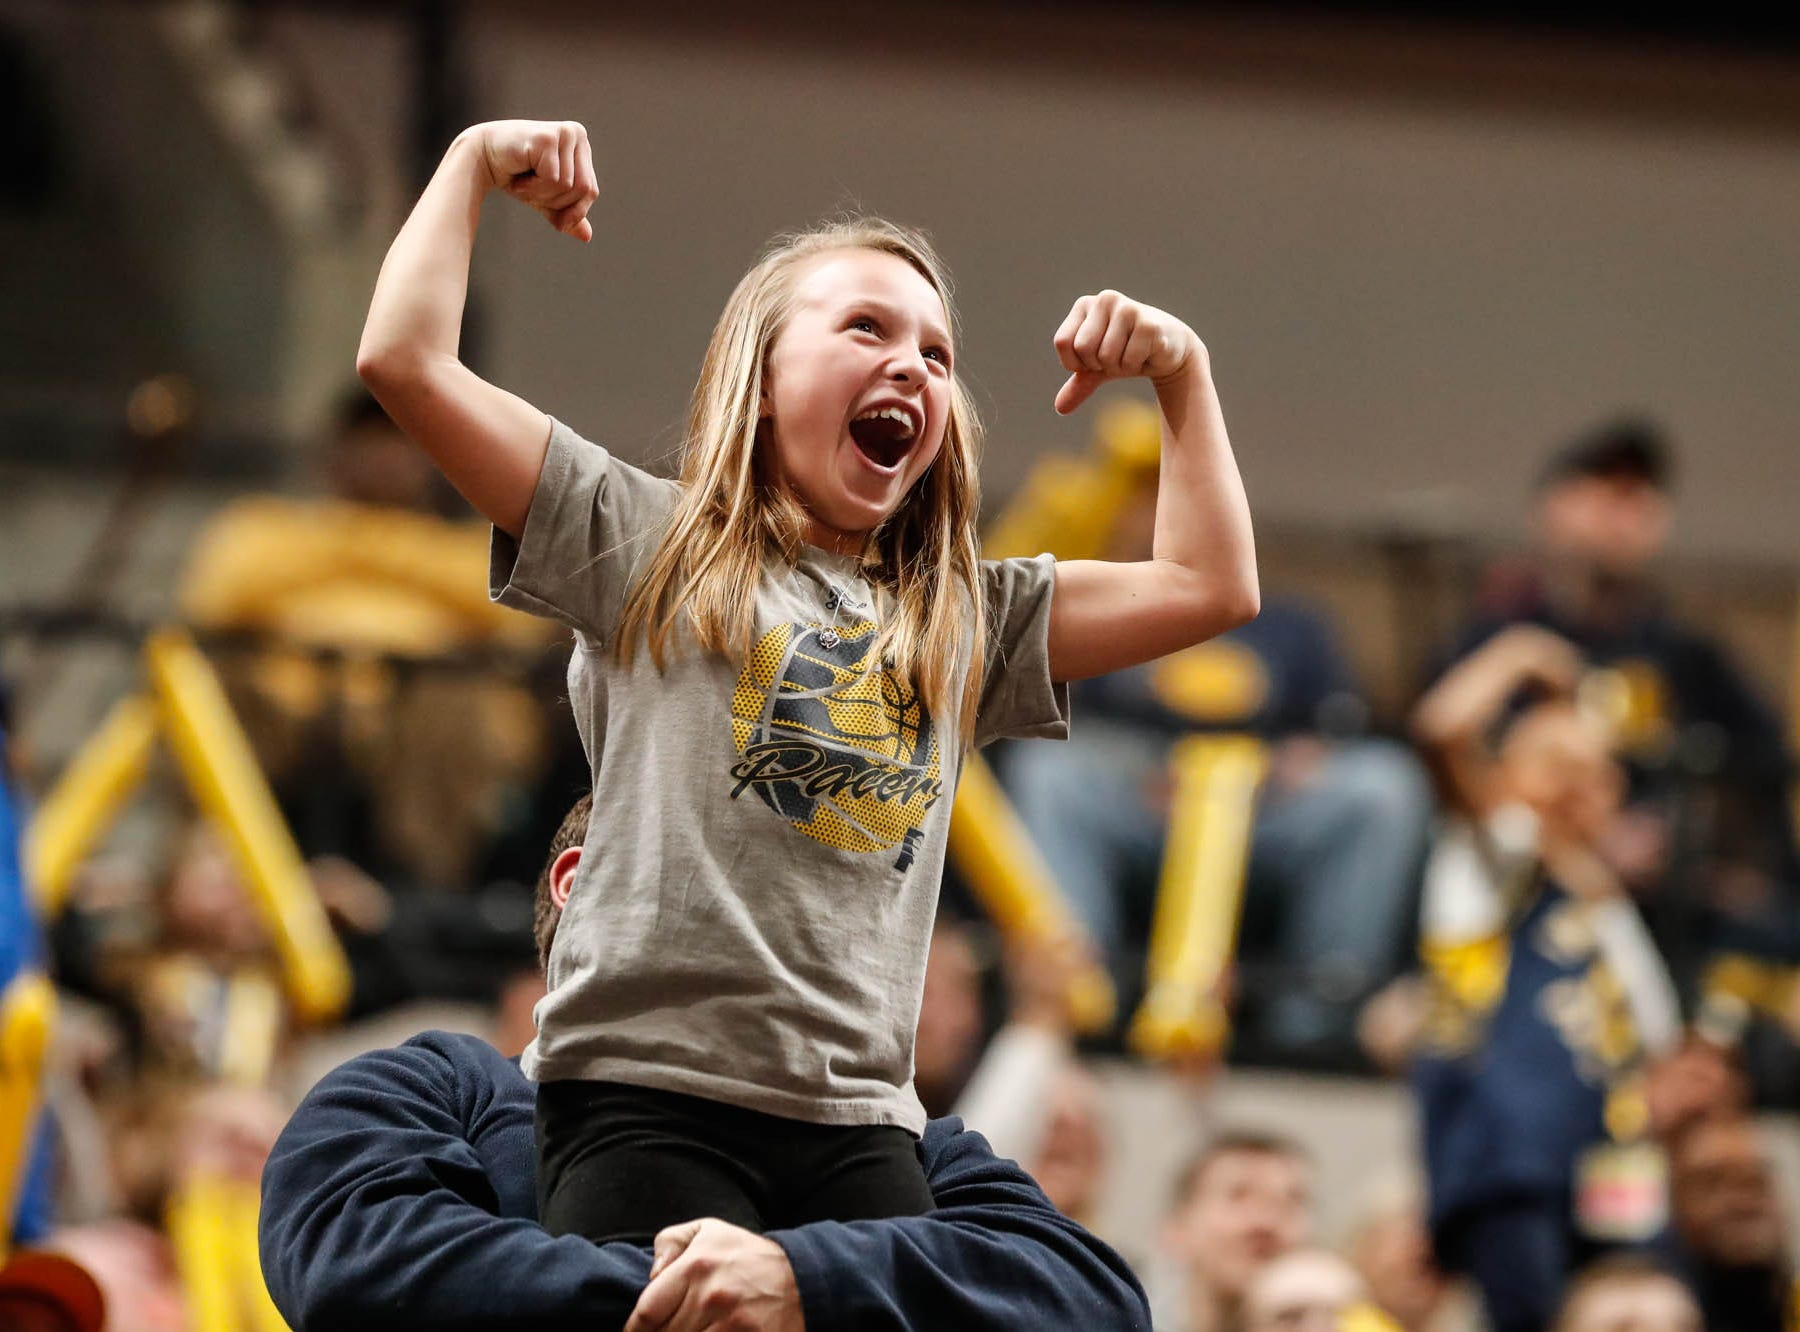 A young fan shows off her guns during a game between the Pacers and Hornets at Bankers Life Fieldhouse on Sunday, Jan. 20, 2019.